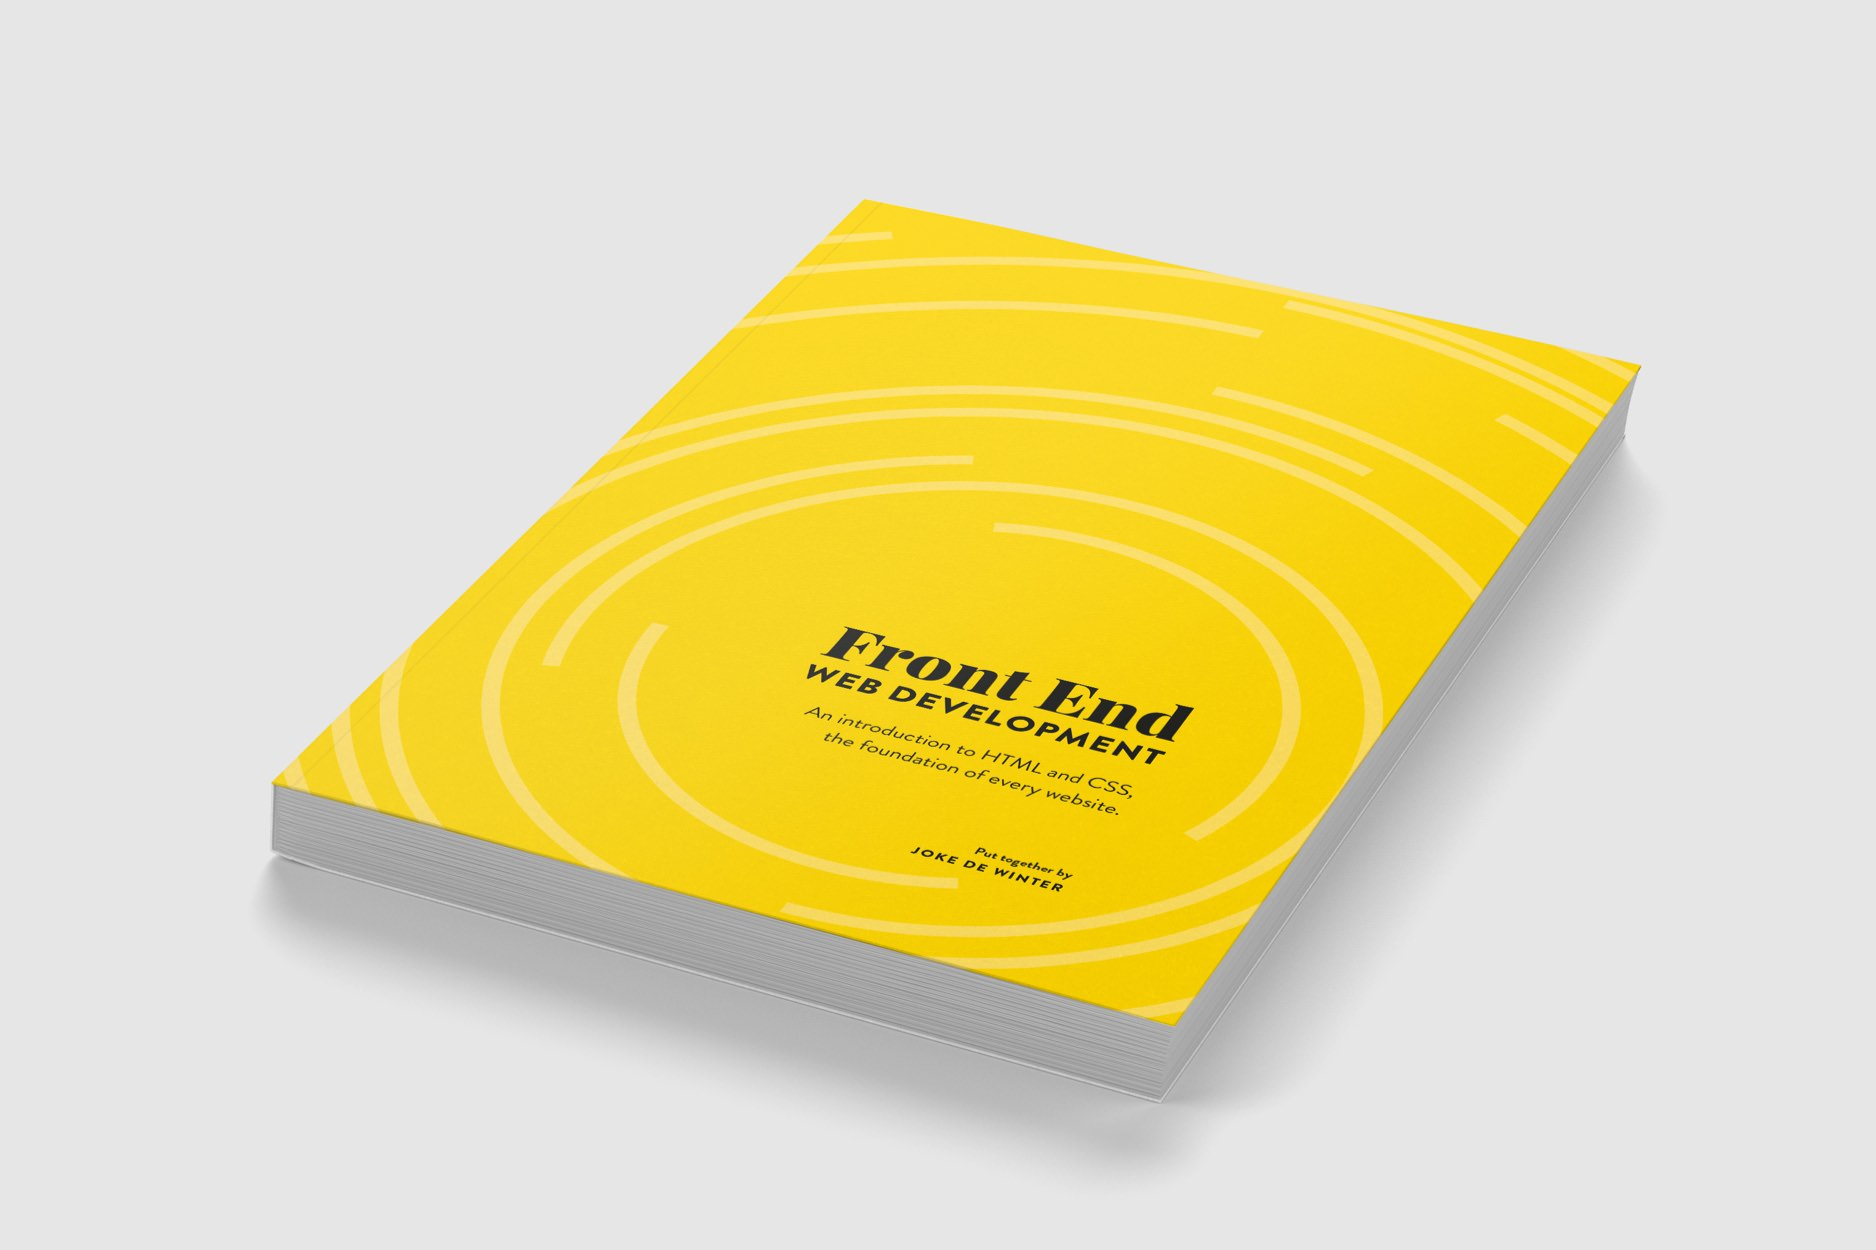 Book cover design for Front End Web Development.